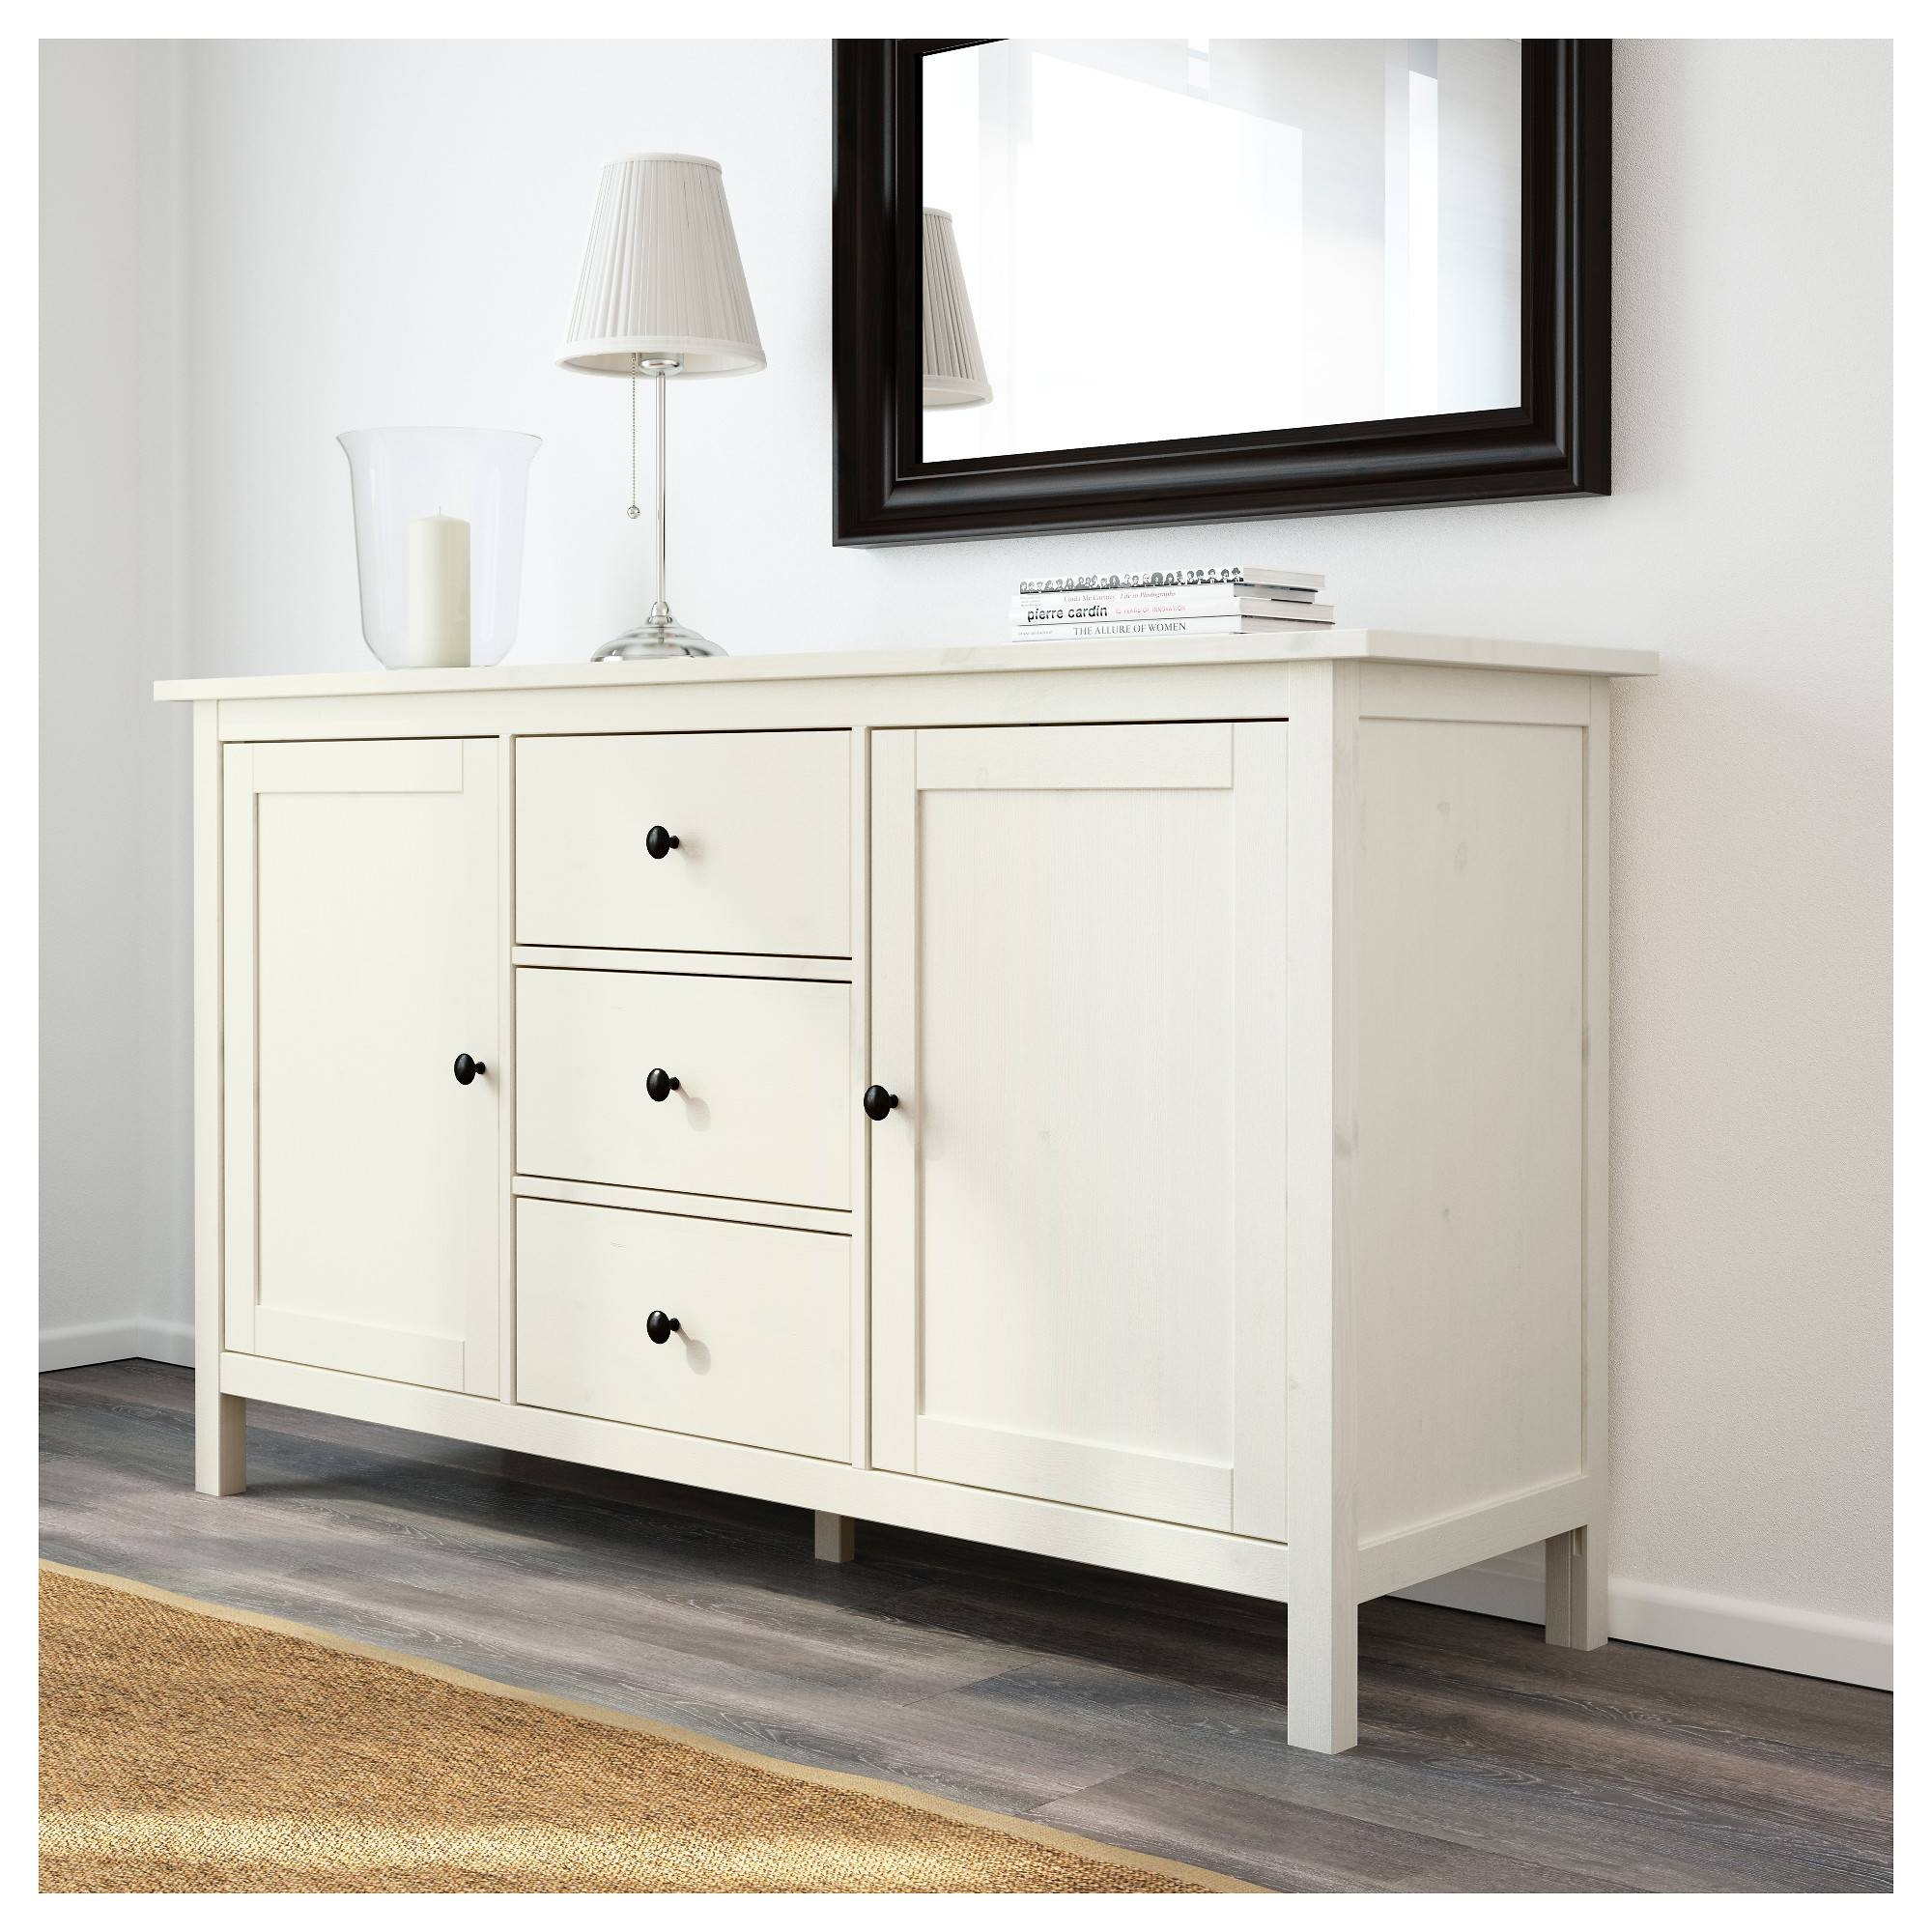 Hemnes Sideboard White Stain 157X88 Cm – Ikea For Ikea Hemnes Sideboards (View 6 of 15)